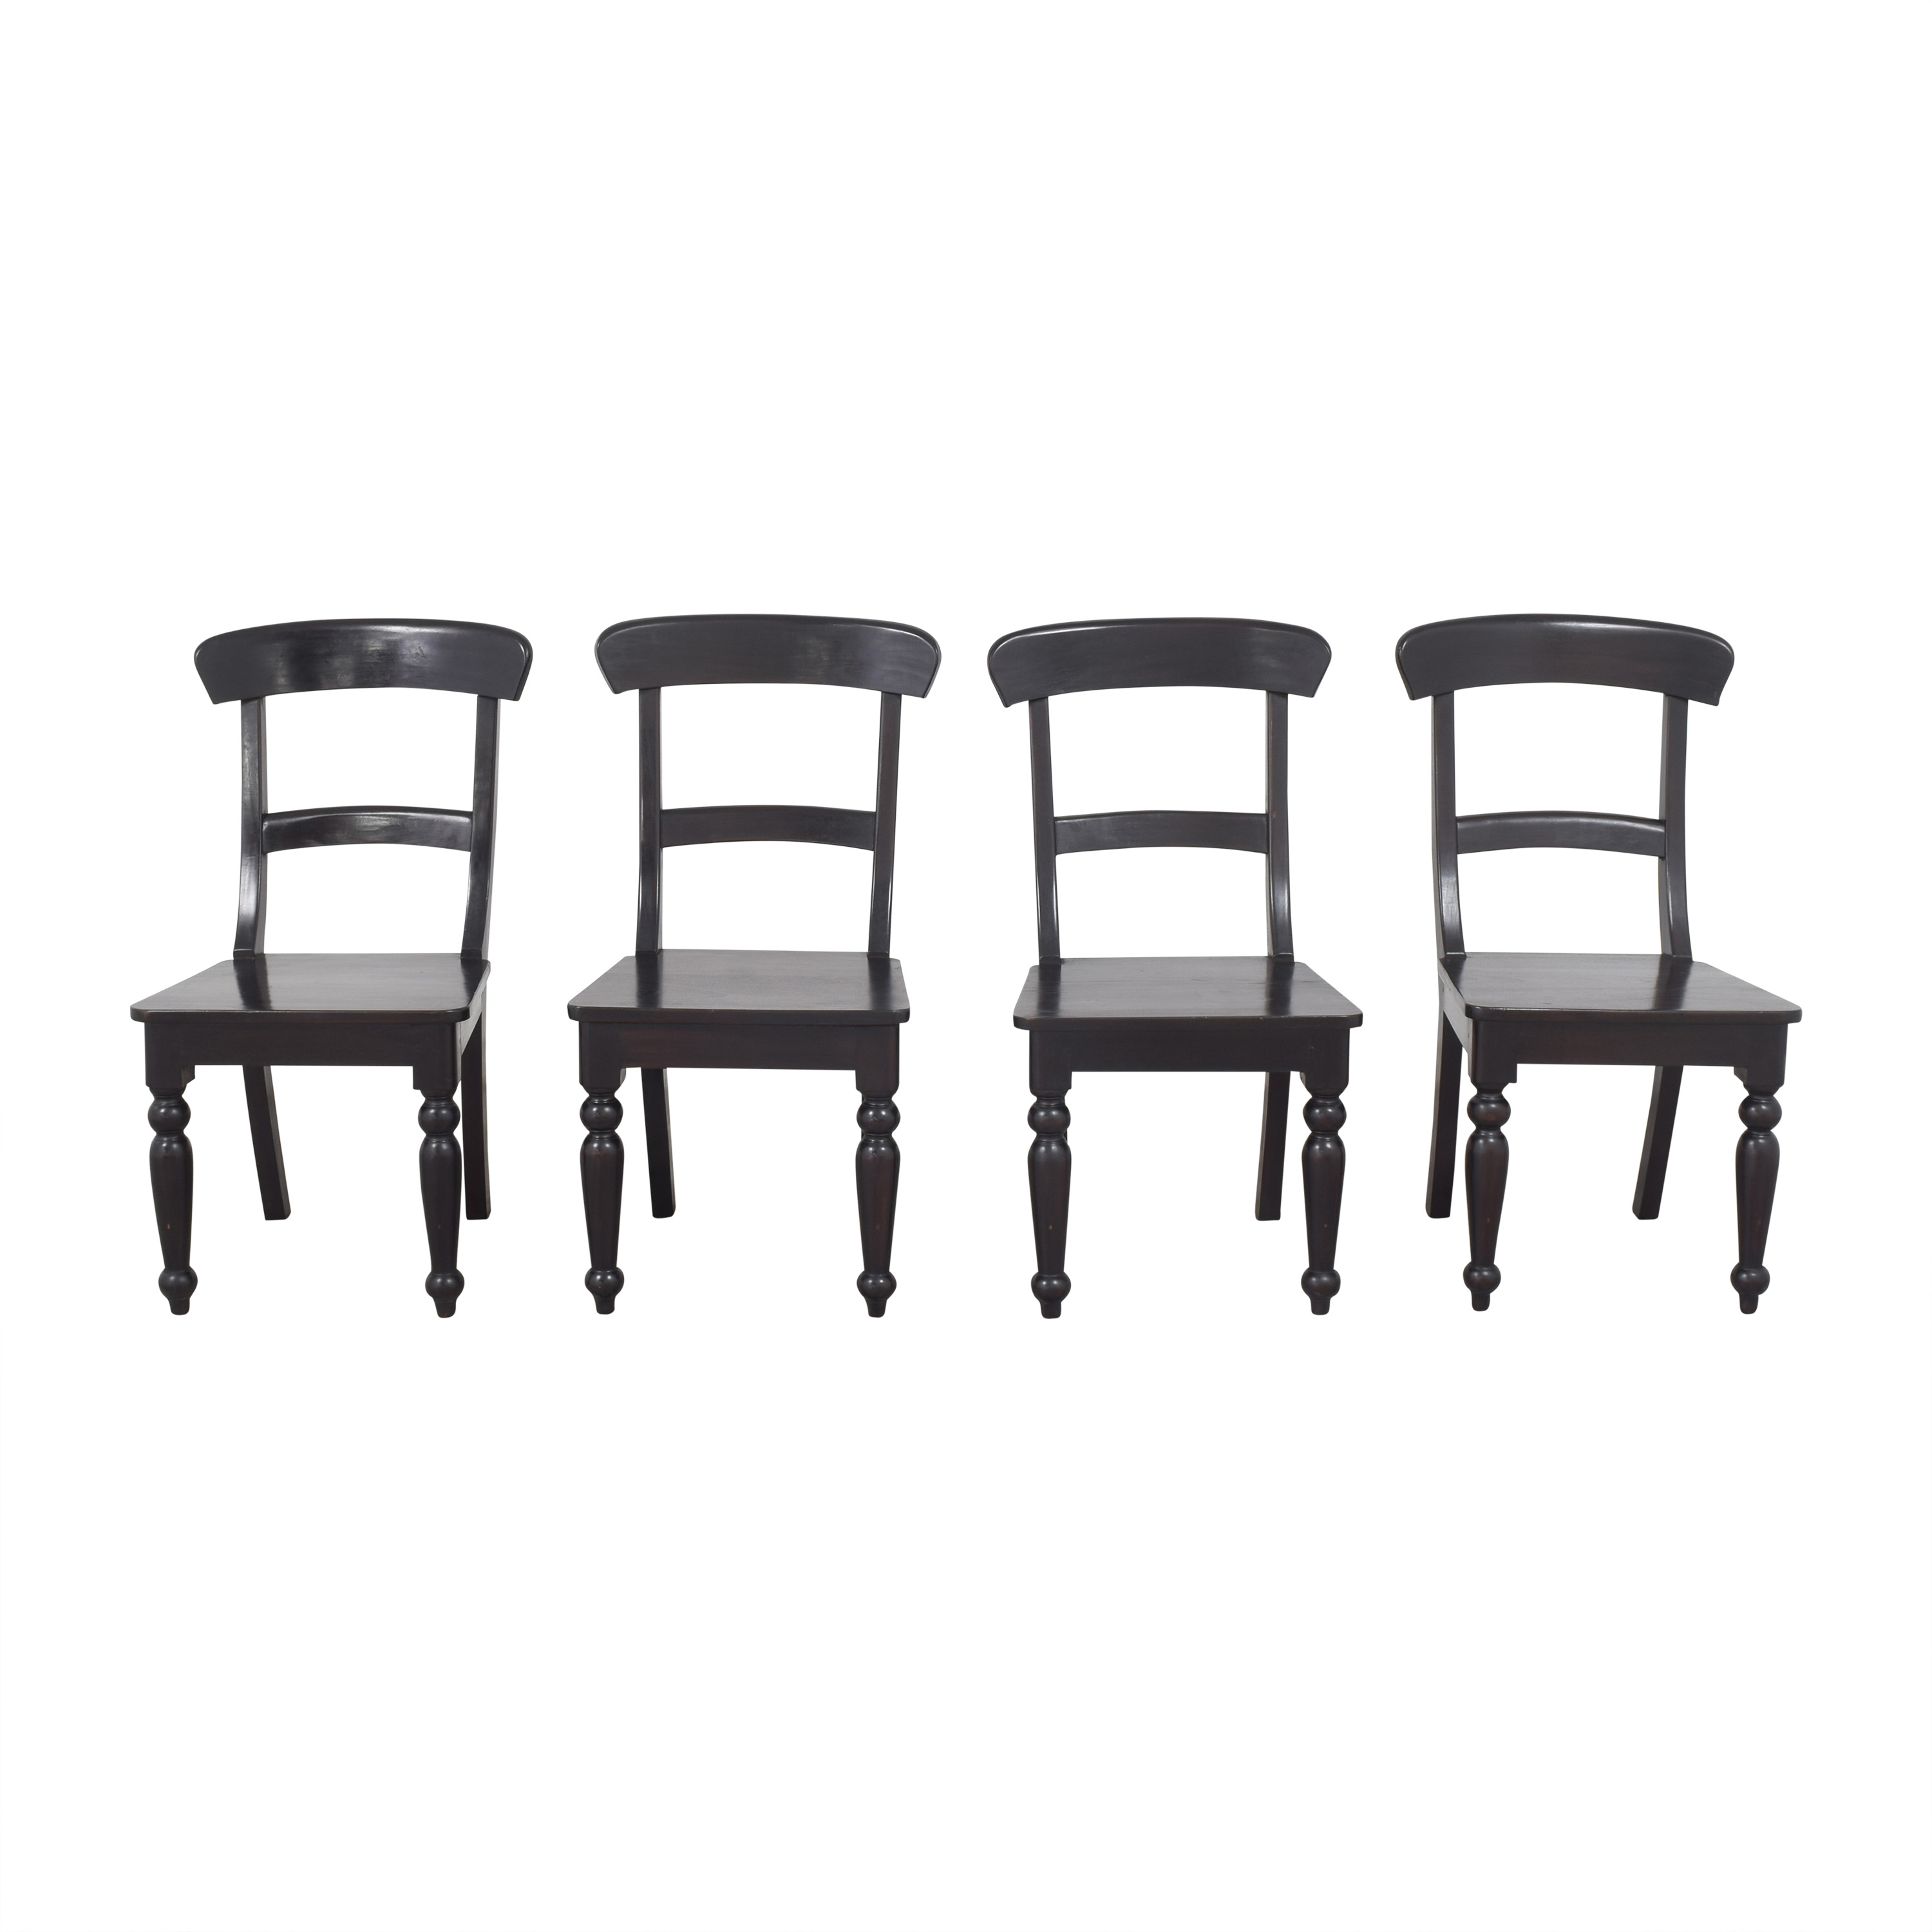 Crate & Barrel Crate & Barrel Dining Side Chairs dark brown